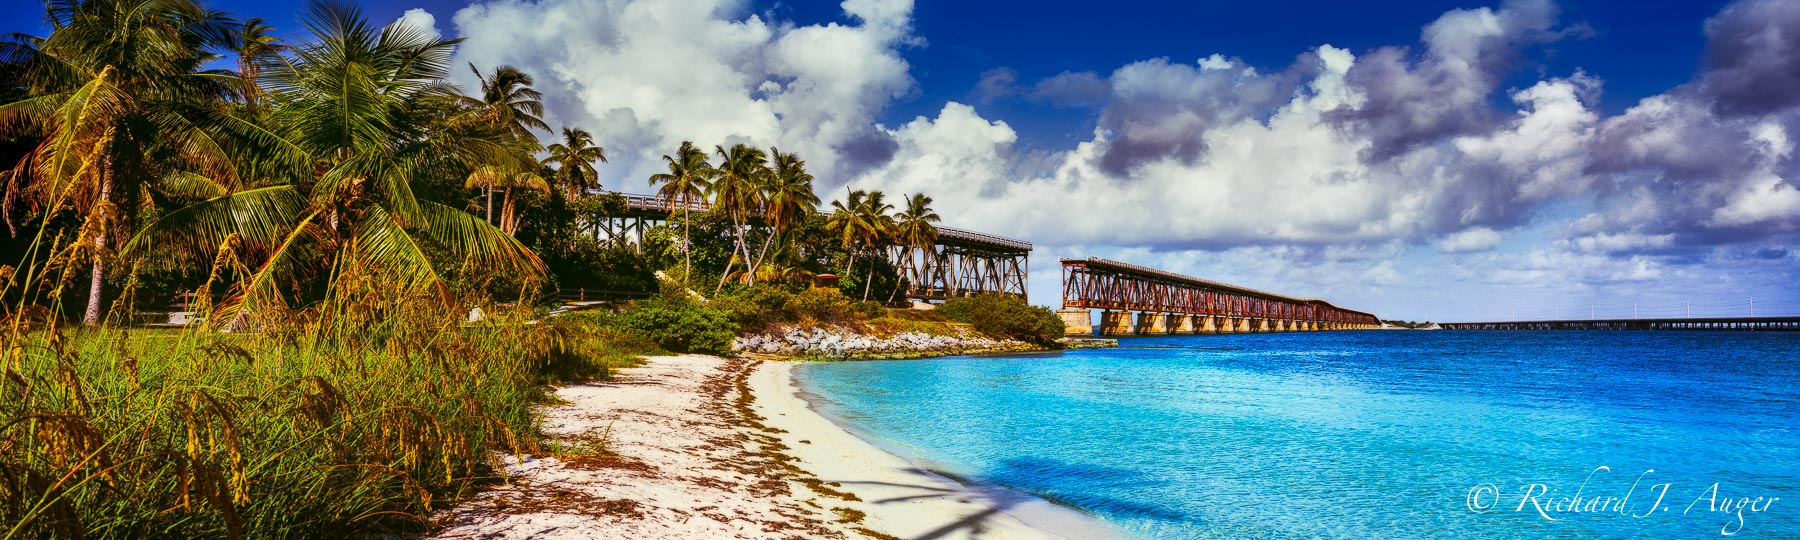 Bahia Honda State Park, Florida Keys, Bridge, Panorama, Blues, Palm Trees, Old Florida, Coastal, Photograph, Landscape, Image, Canvas